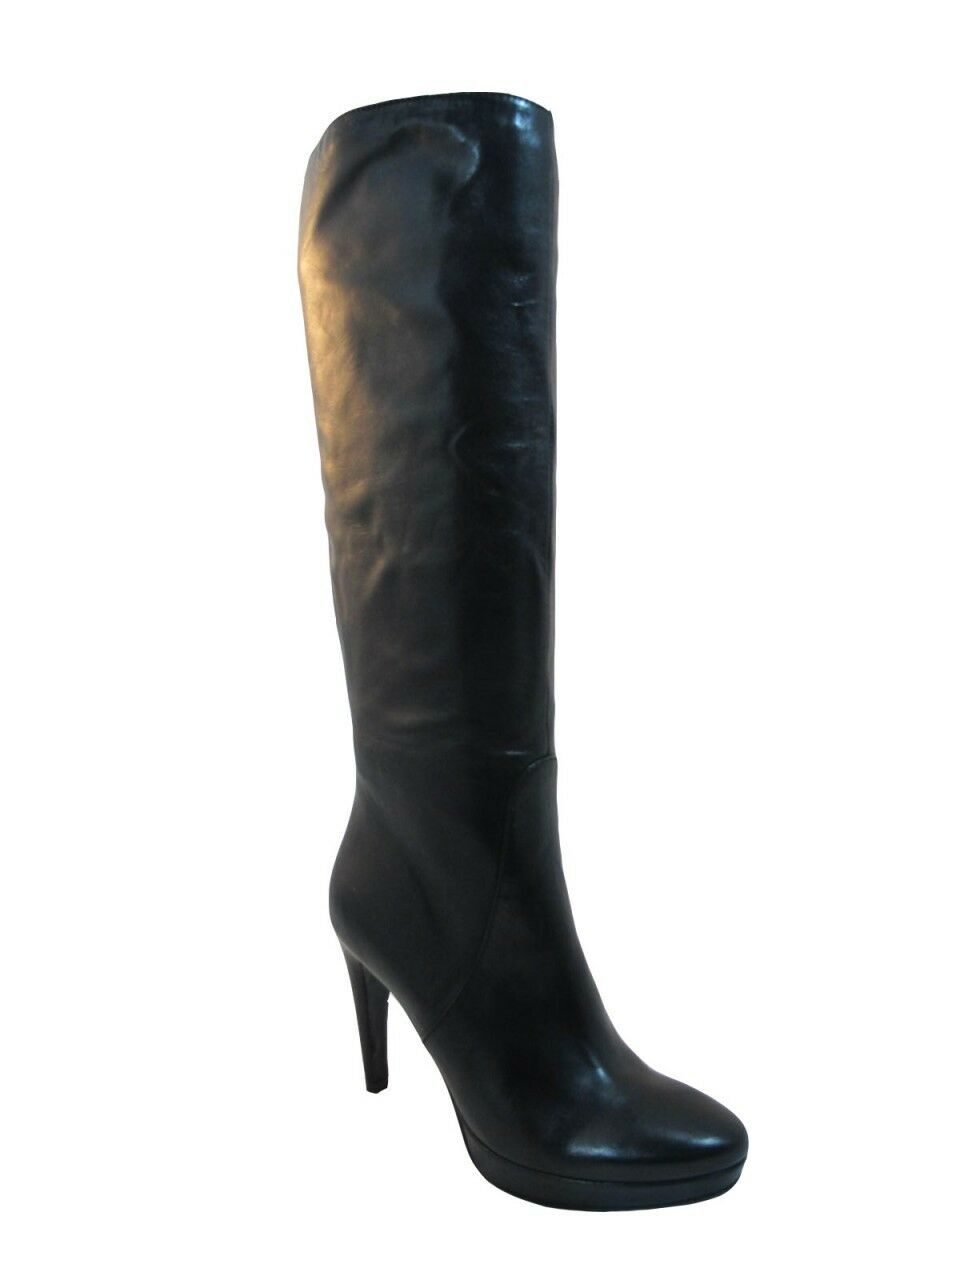 The Seller Women's Knee High 6656 Italian Leather boots